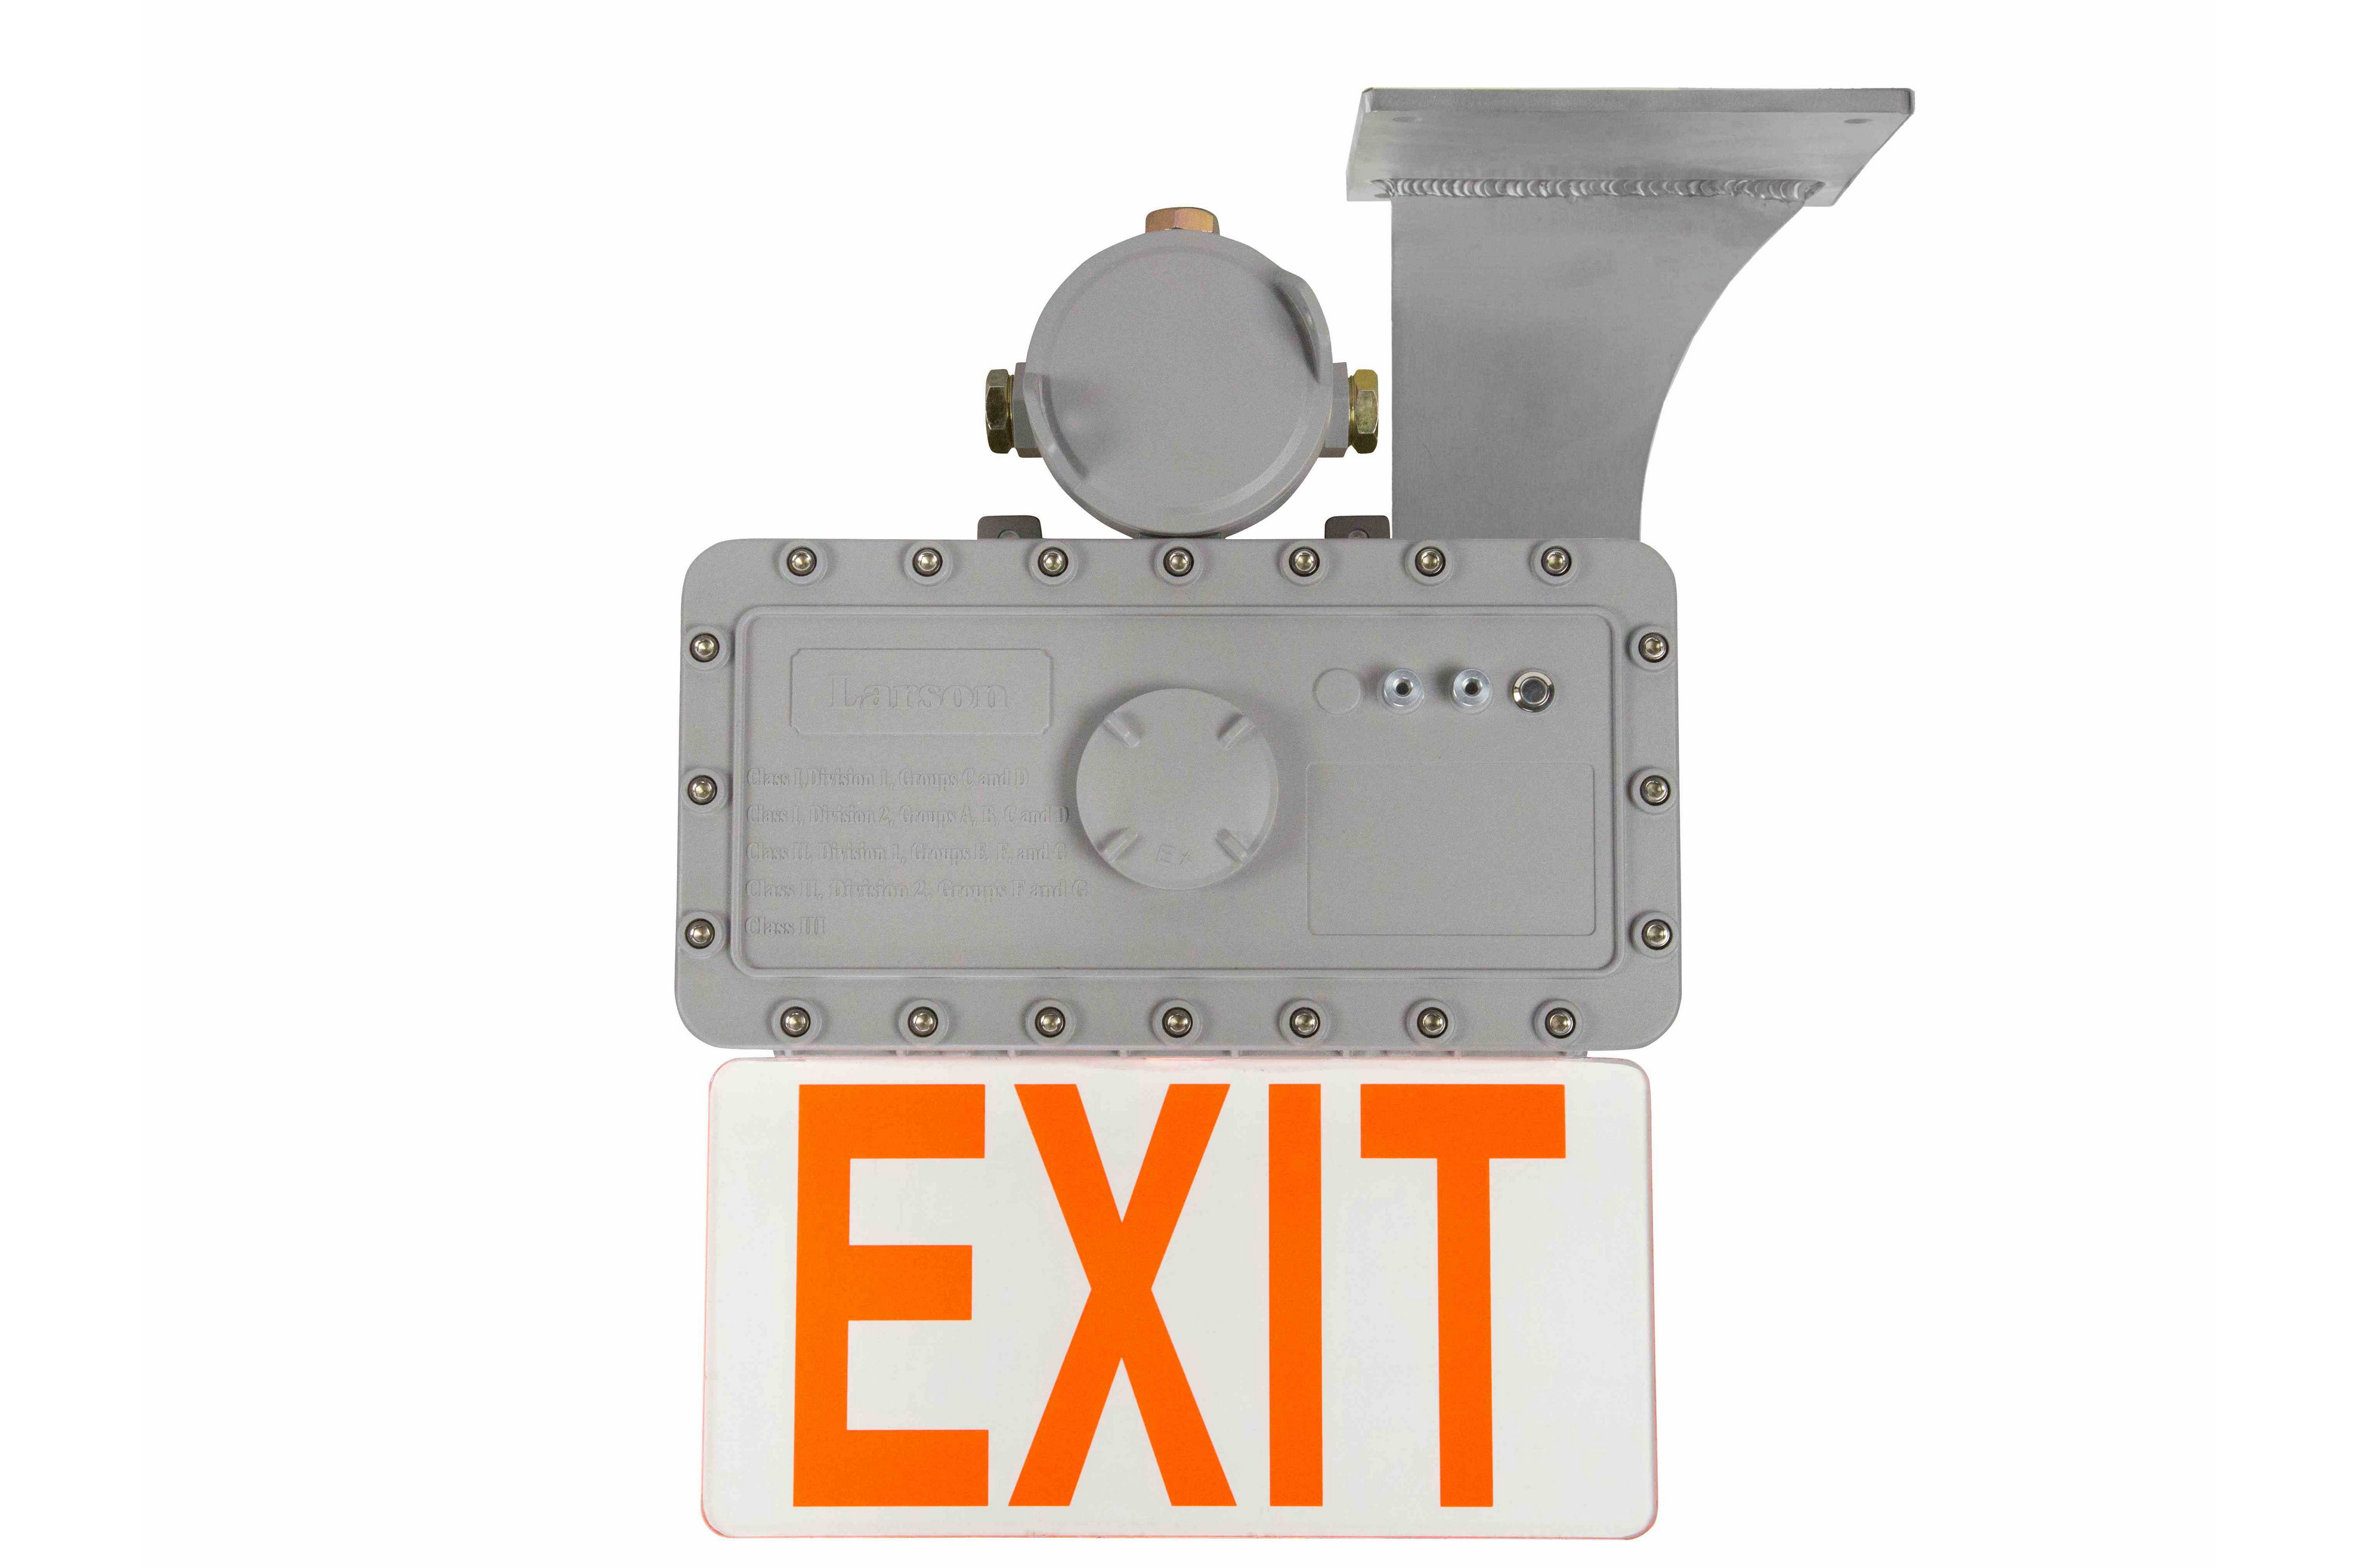 Explosion Proof Exit Sign